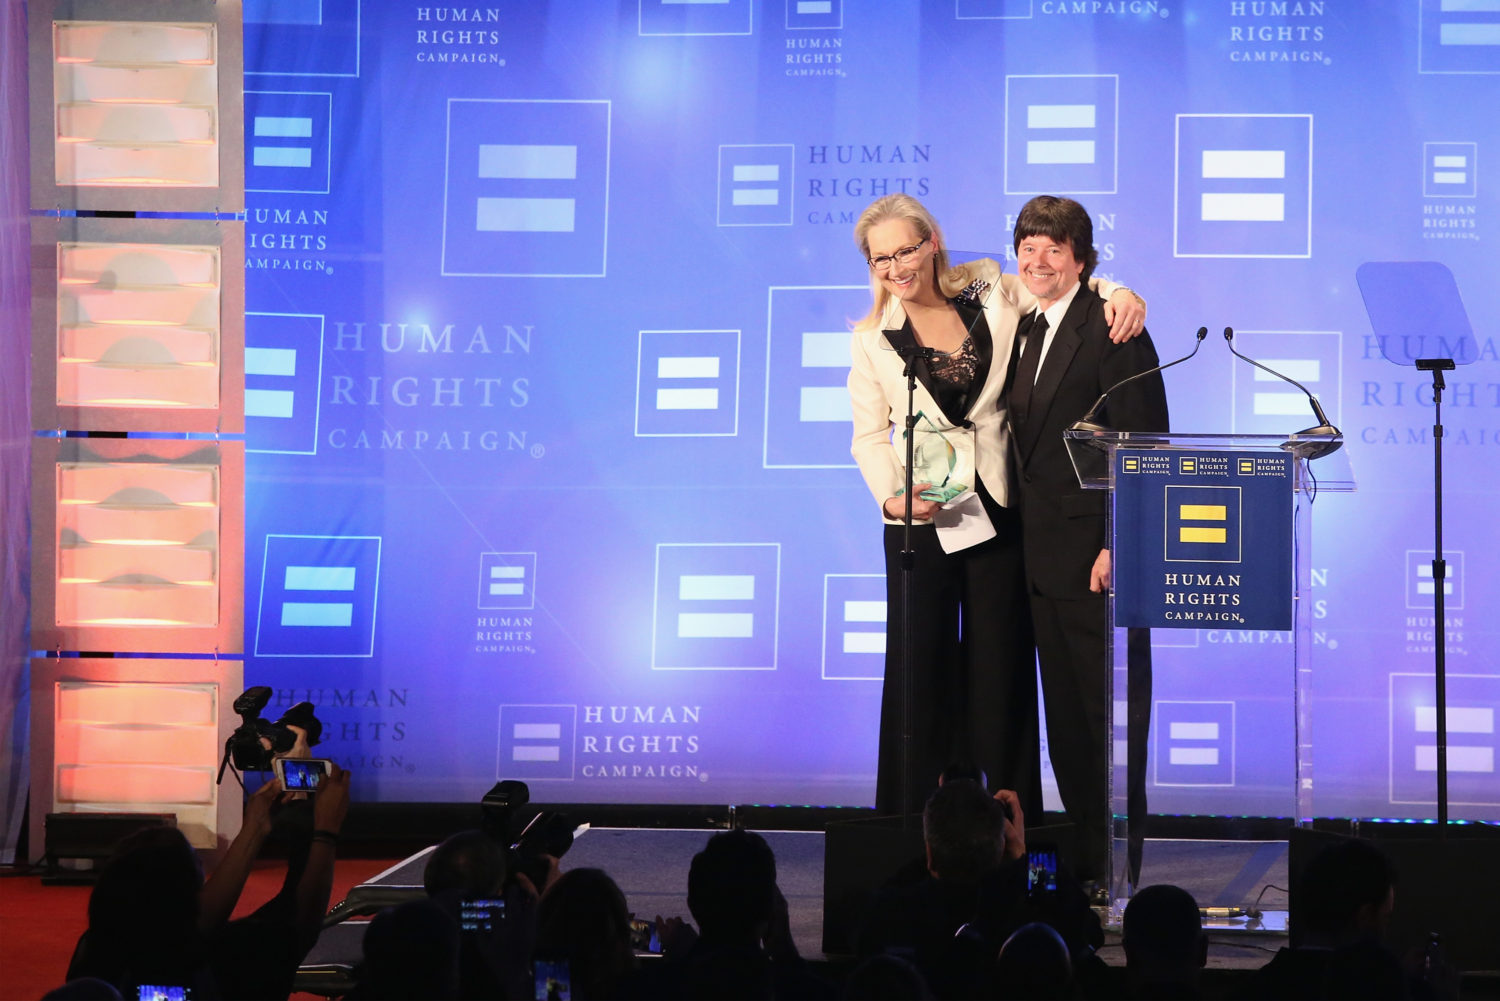 Meryl Streep and filmmaker Ken Burns at the Human Rights Campaign Gala (Rob Kim/Getty Images)